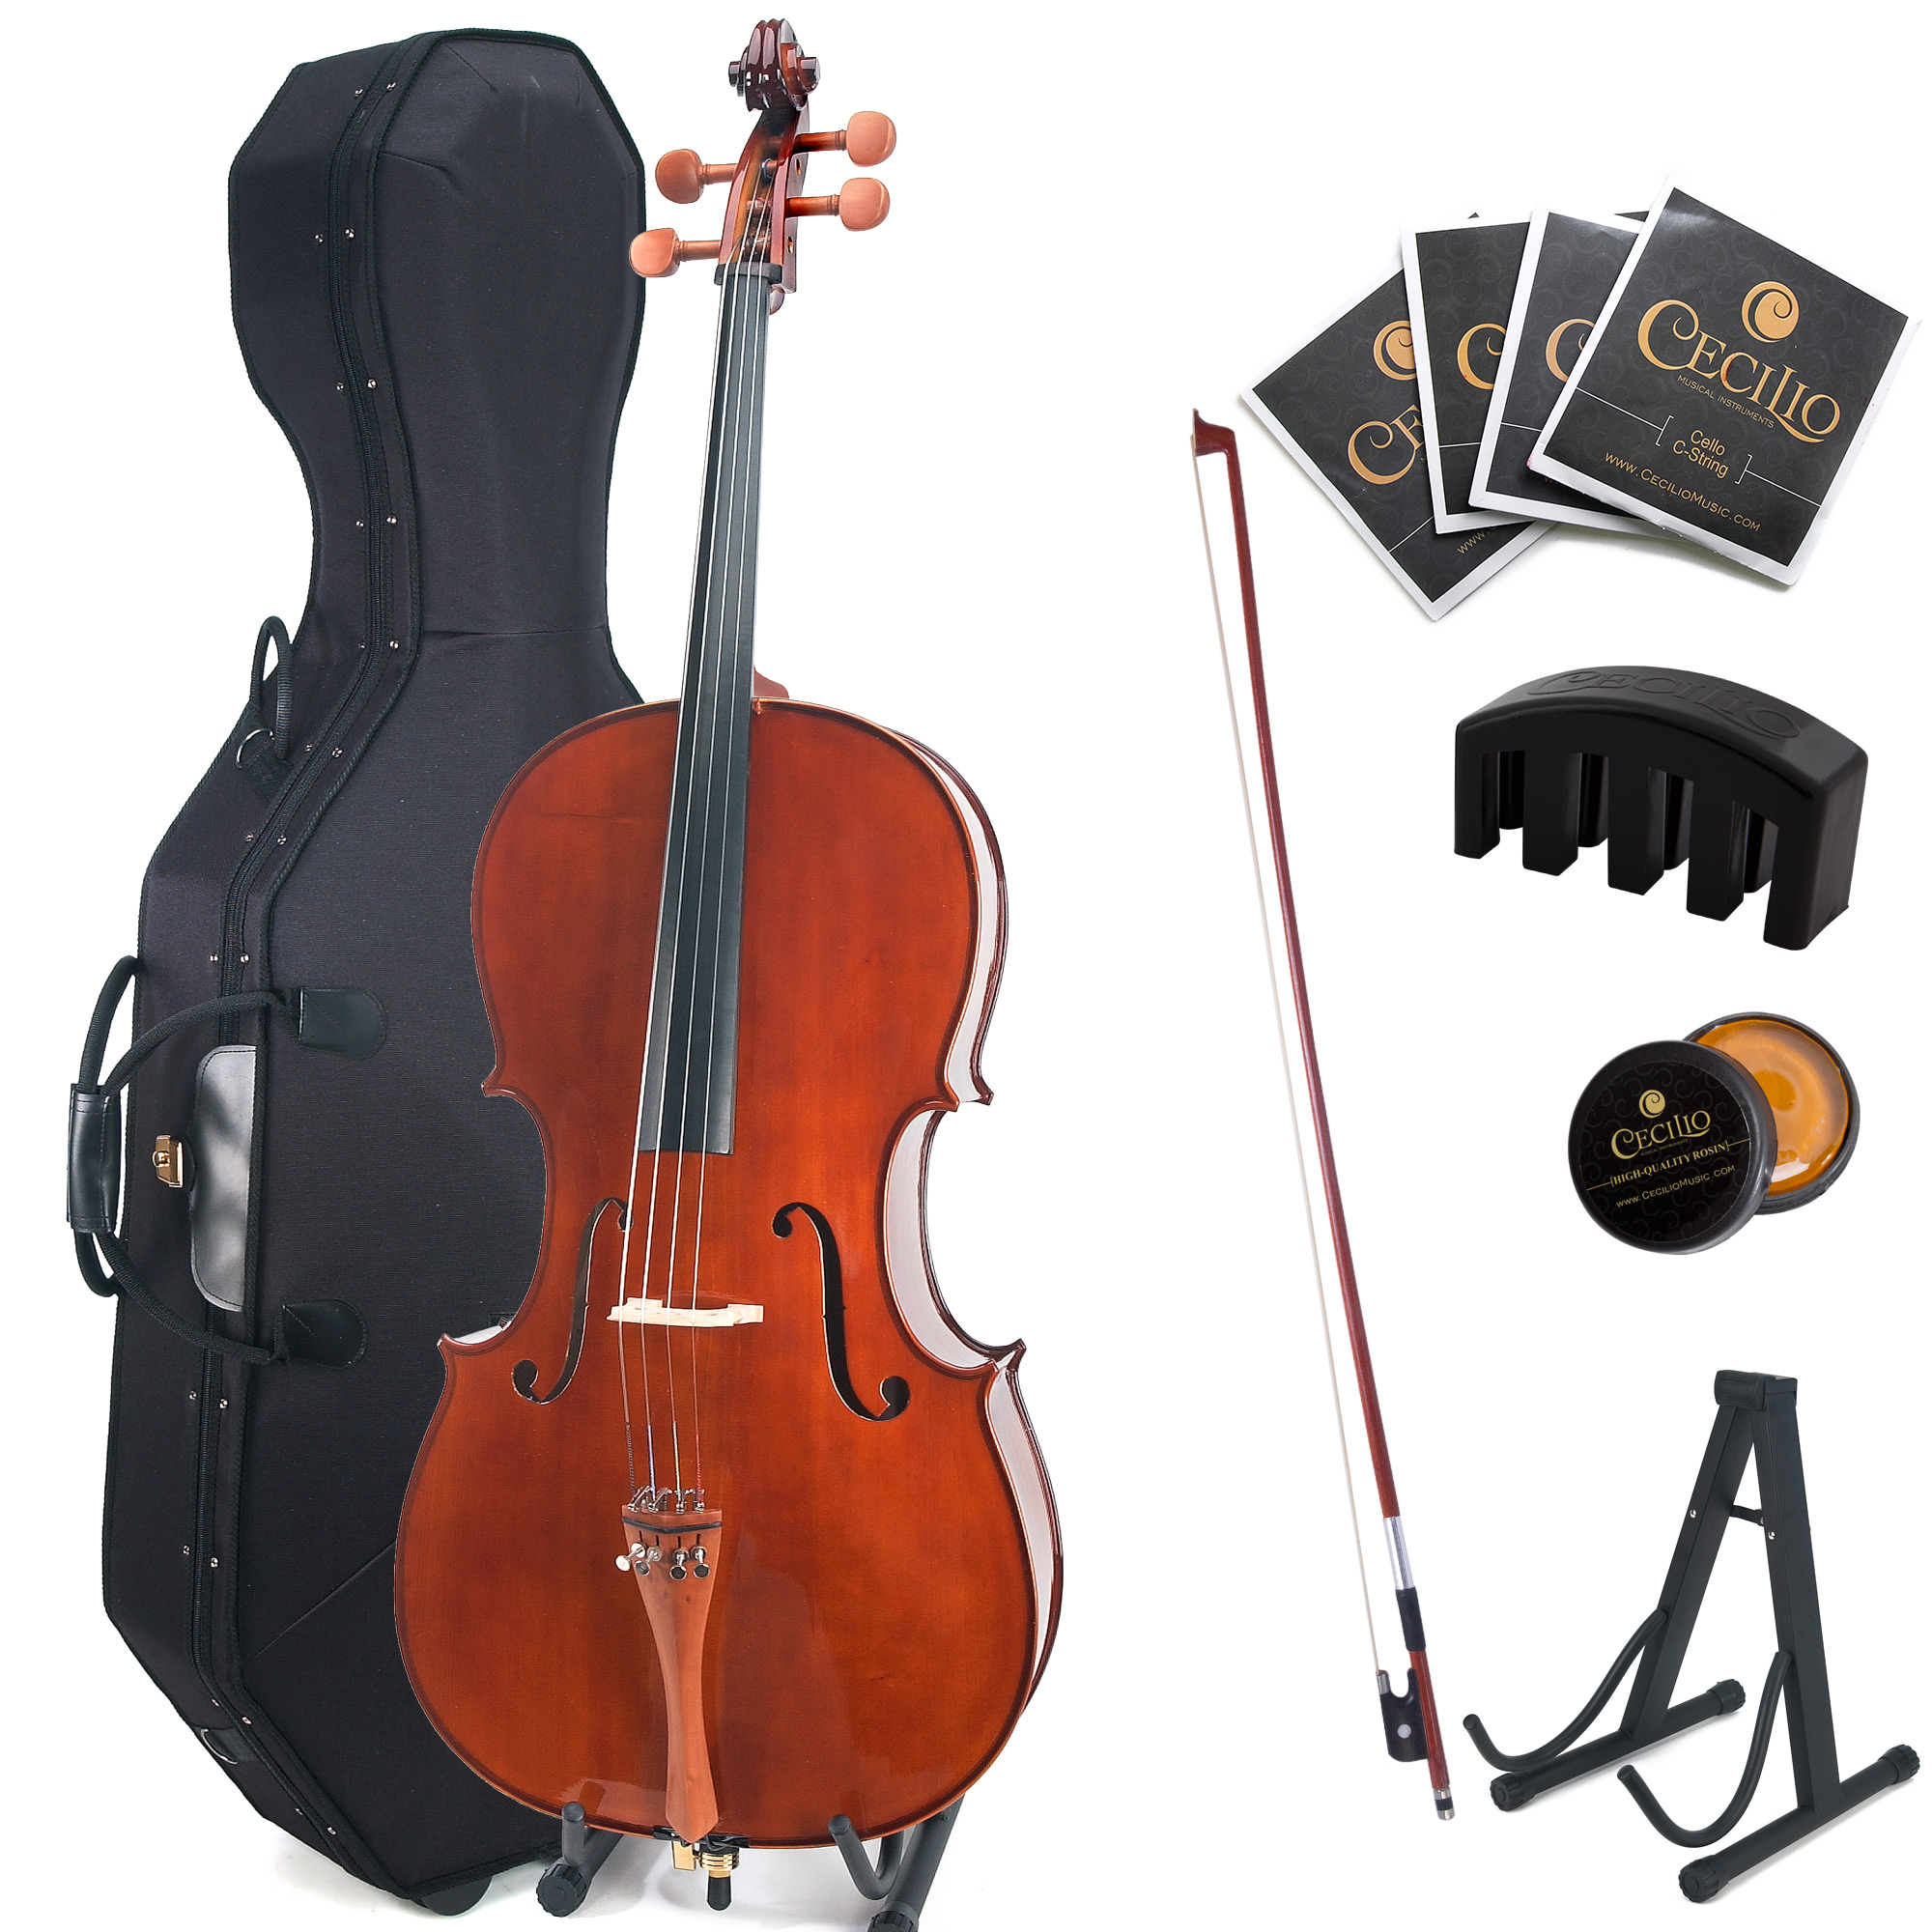 Cecilio 4 4 CCO-300 Solid Wood Cello with Hard and Soft Case, Cello Stand, Extra Strings,... by Cecilio Musical Instruments